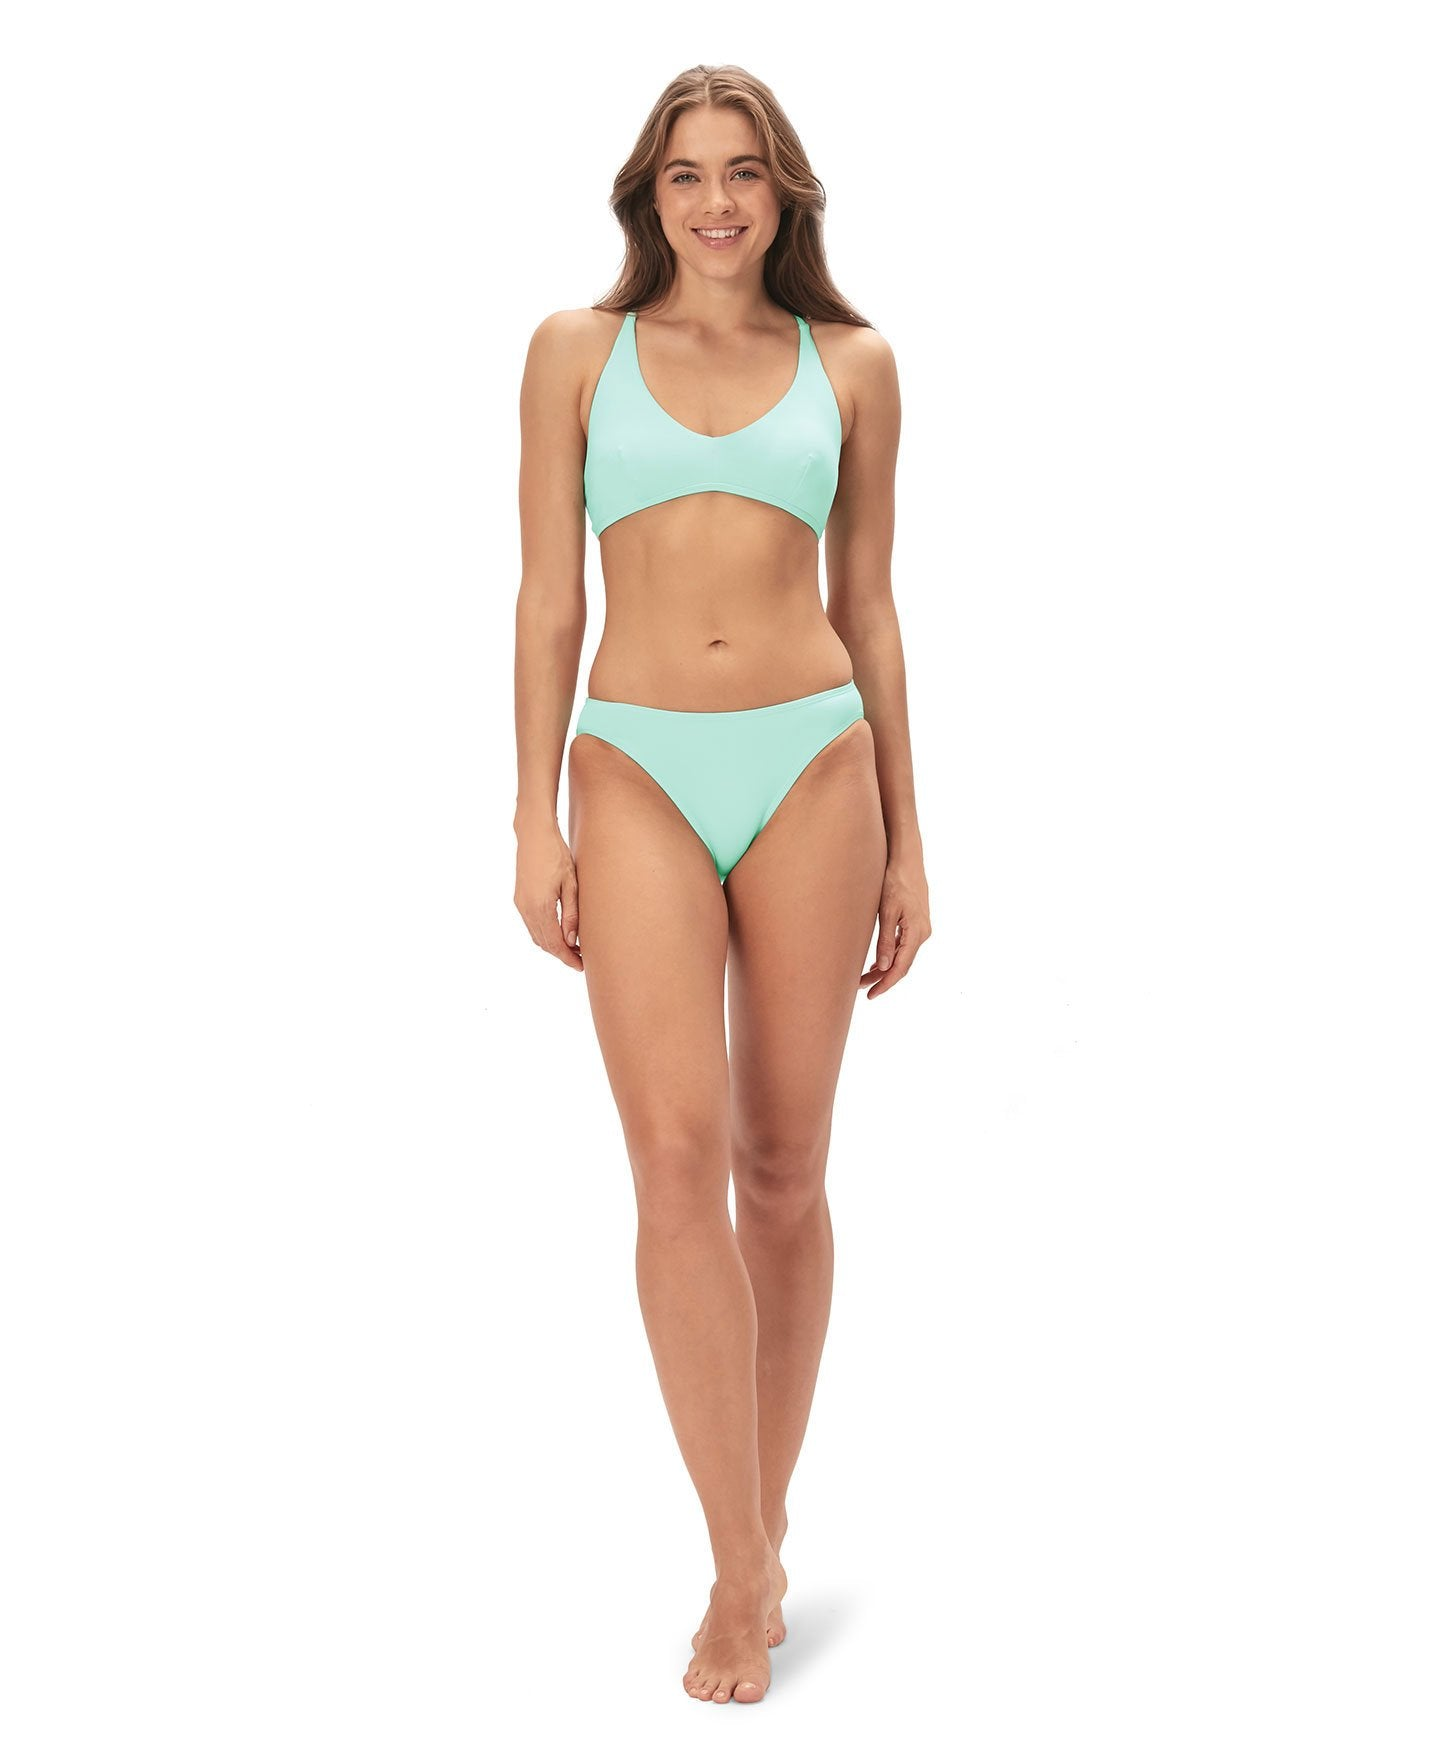 The Bikini Bottom - Flat - Aqua - Final Sale